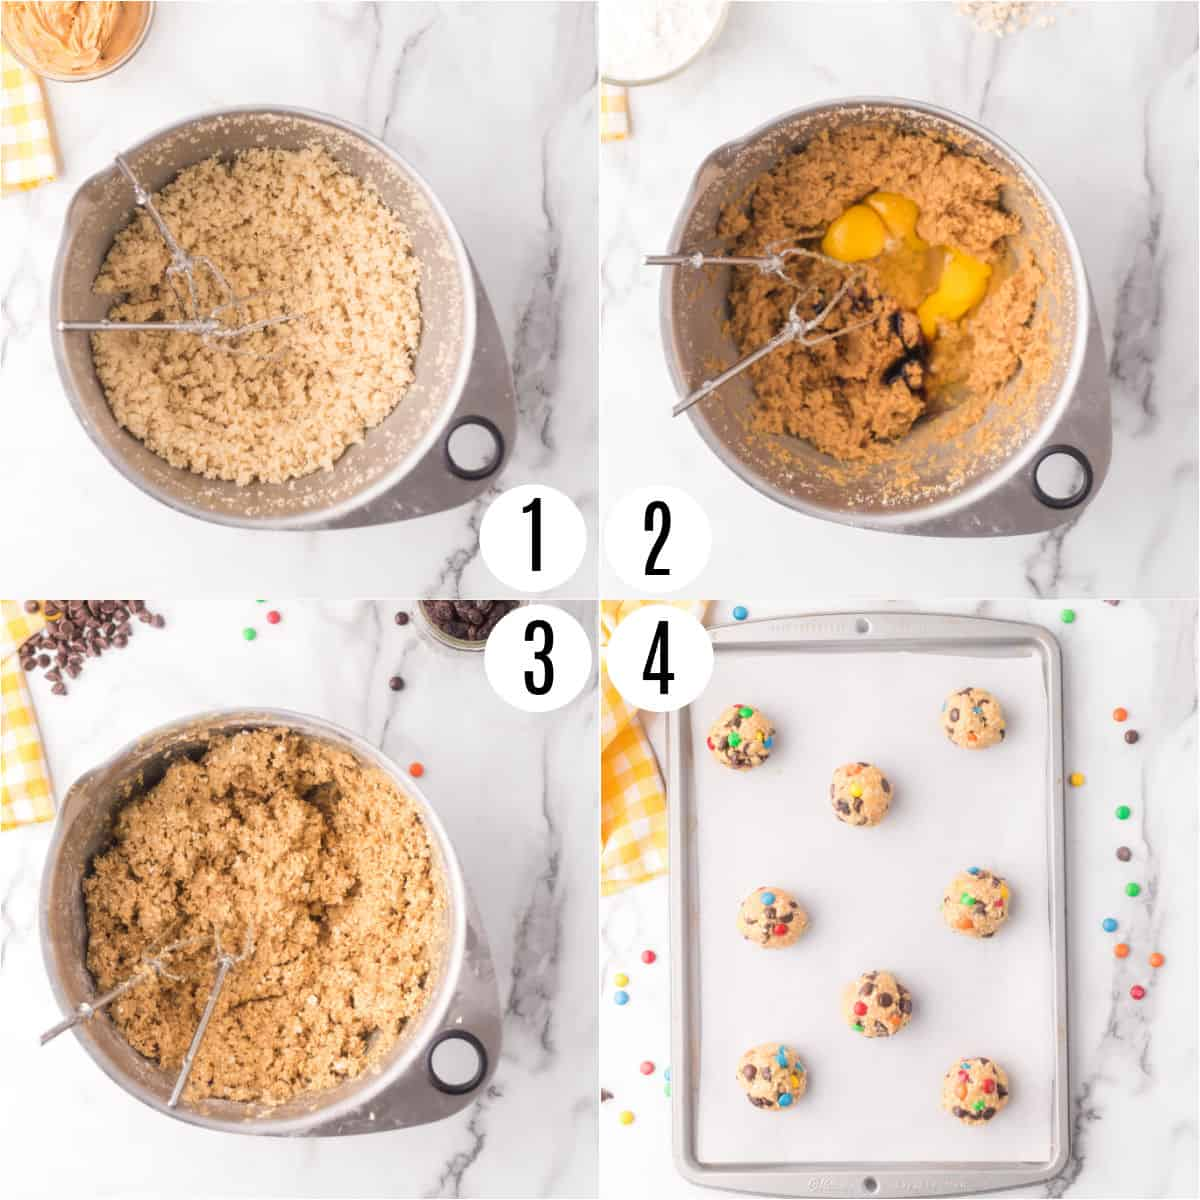 Step by step photos showing how to make monster cookies.